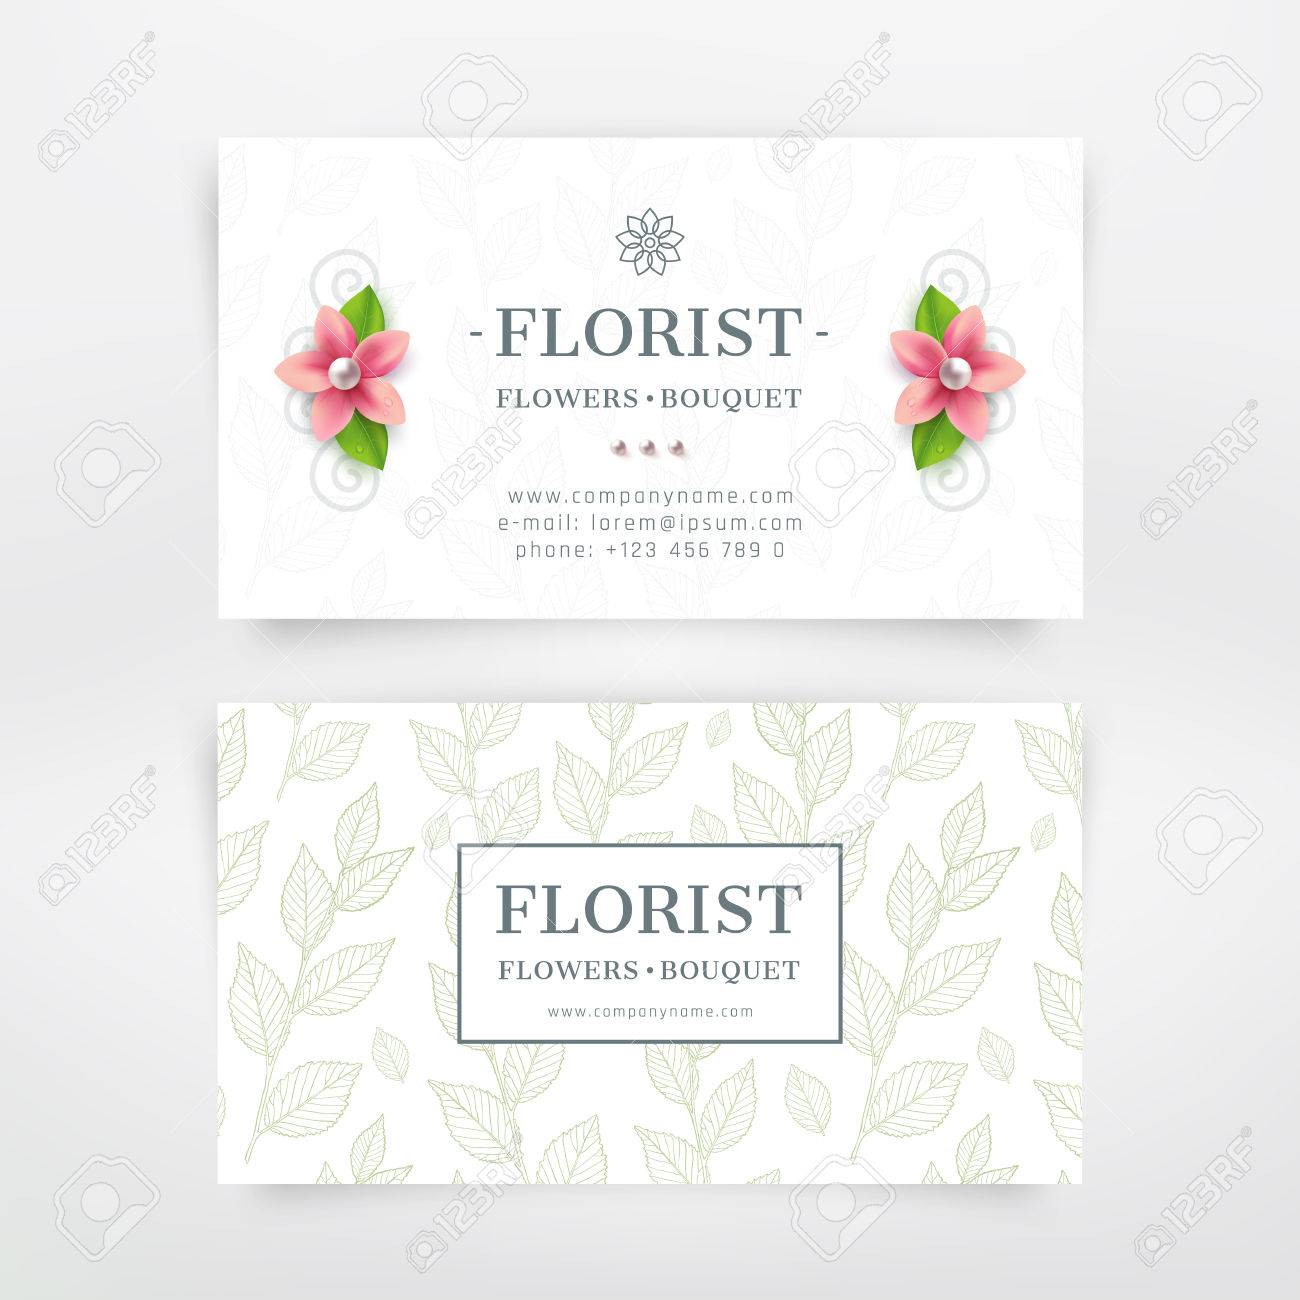 Florist Business Card Design. With Flower And Branch With Leaves ...